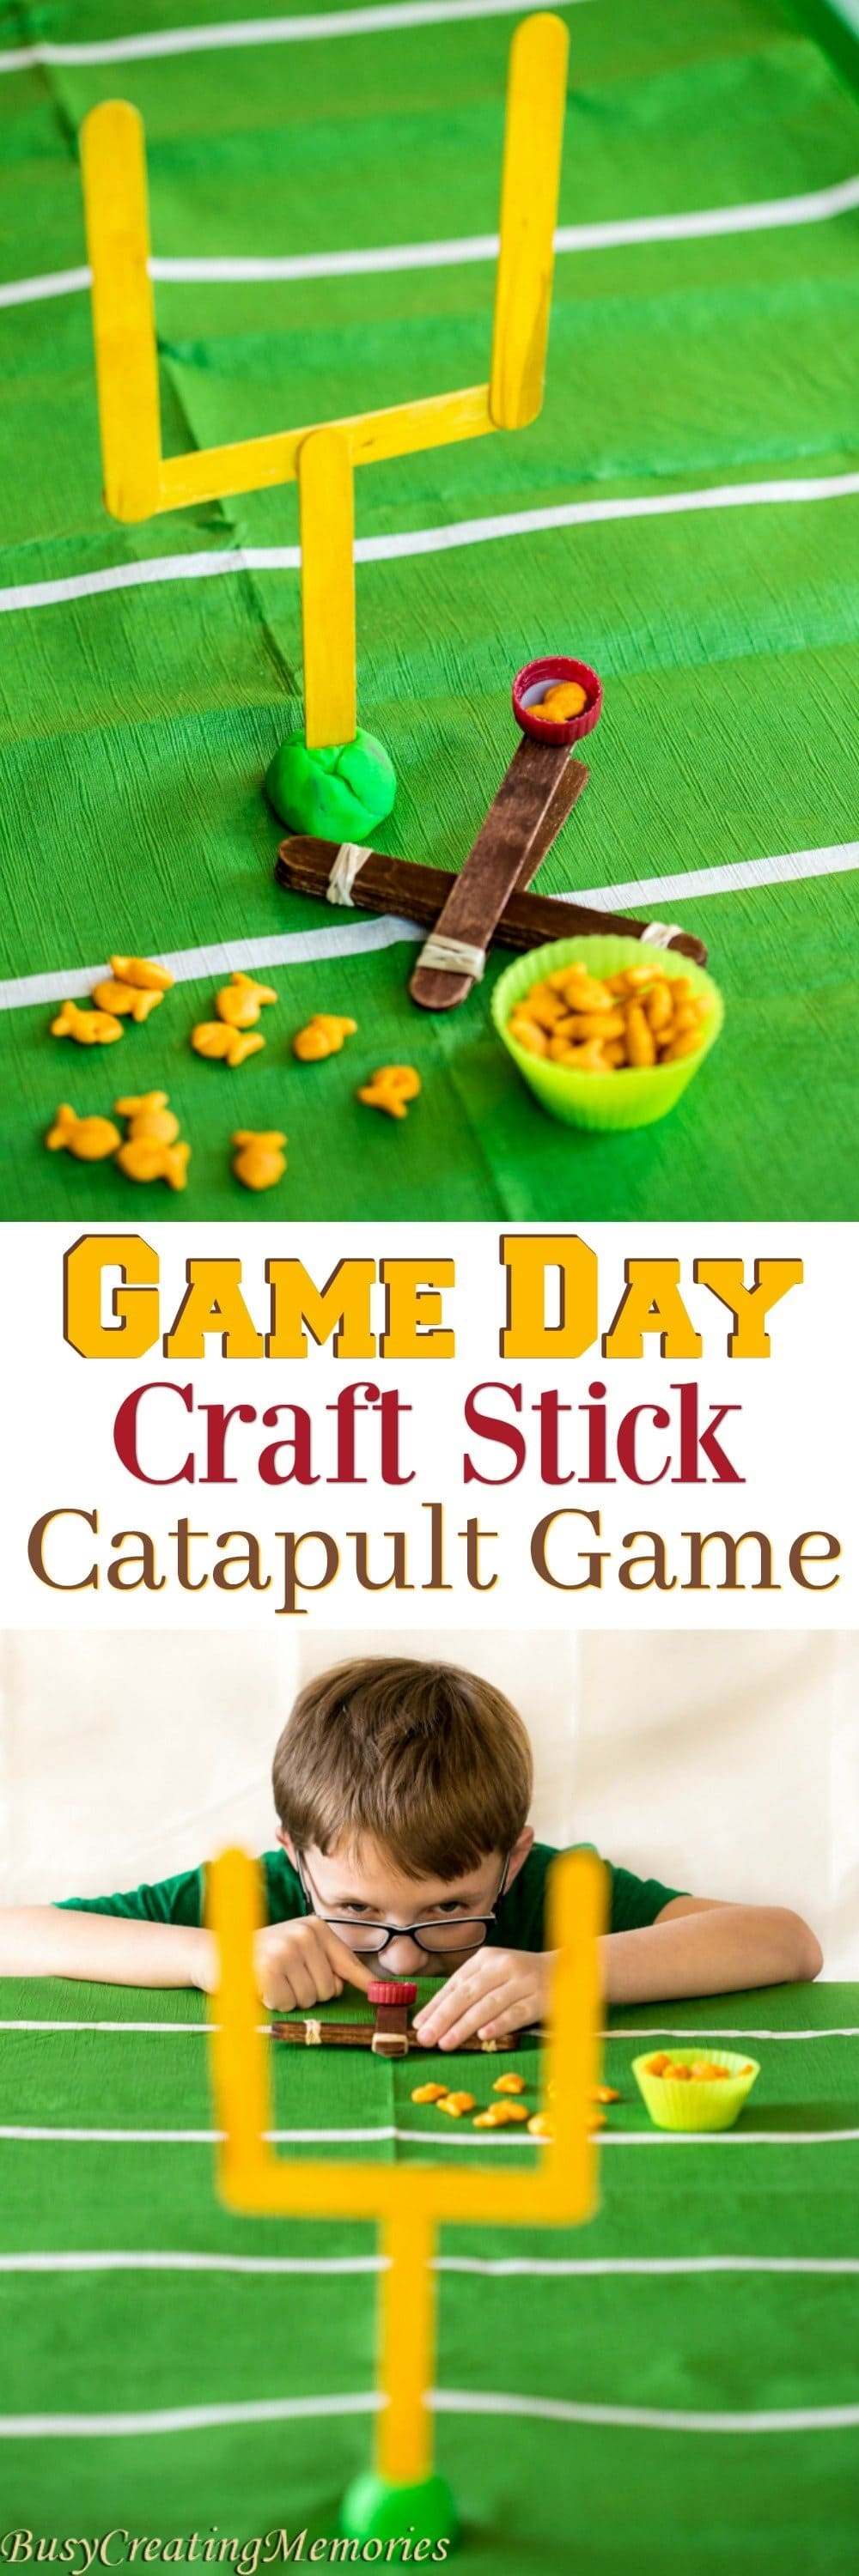 Make your Game Day Fun for the kids with this fun Craft Stick Catapult game. The football craft stick catapult game is quick and easy and great for Game Day